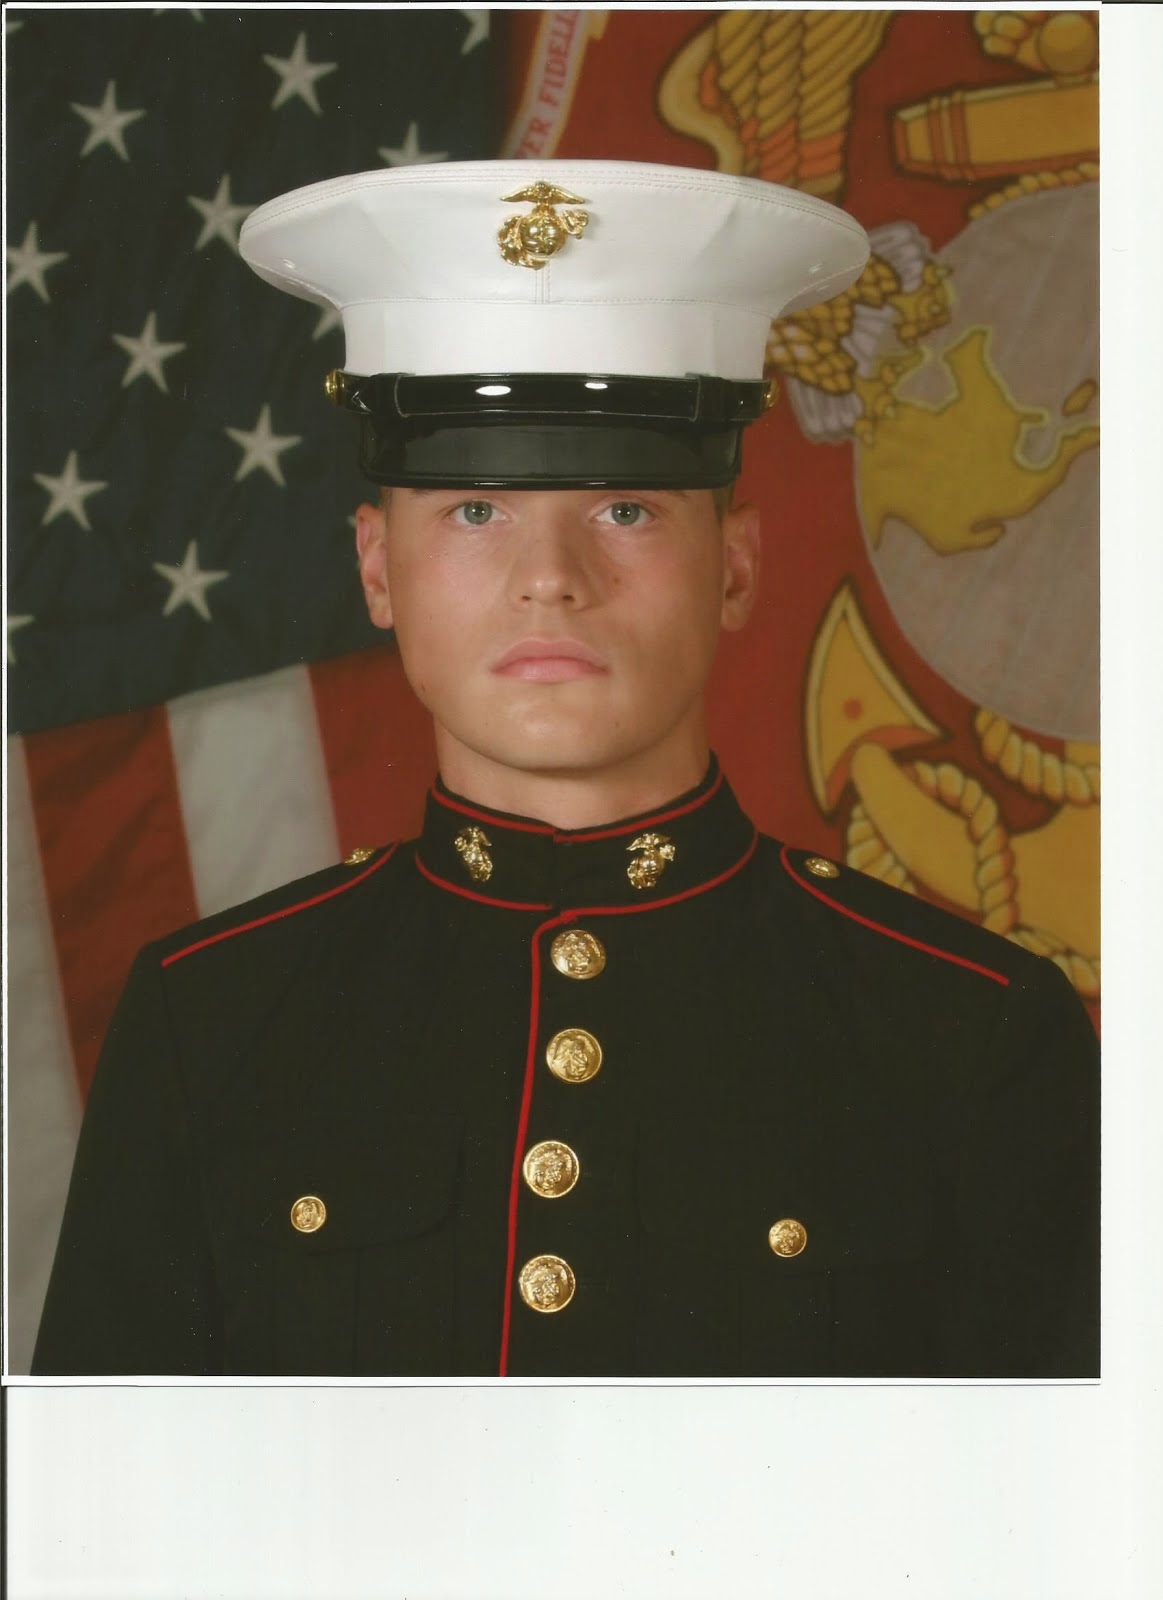 Our newest Marine